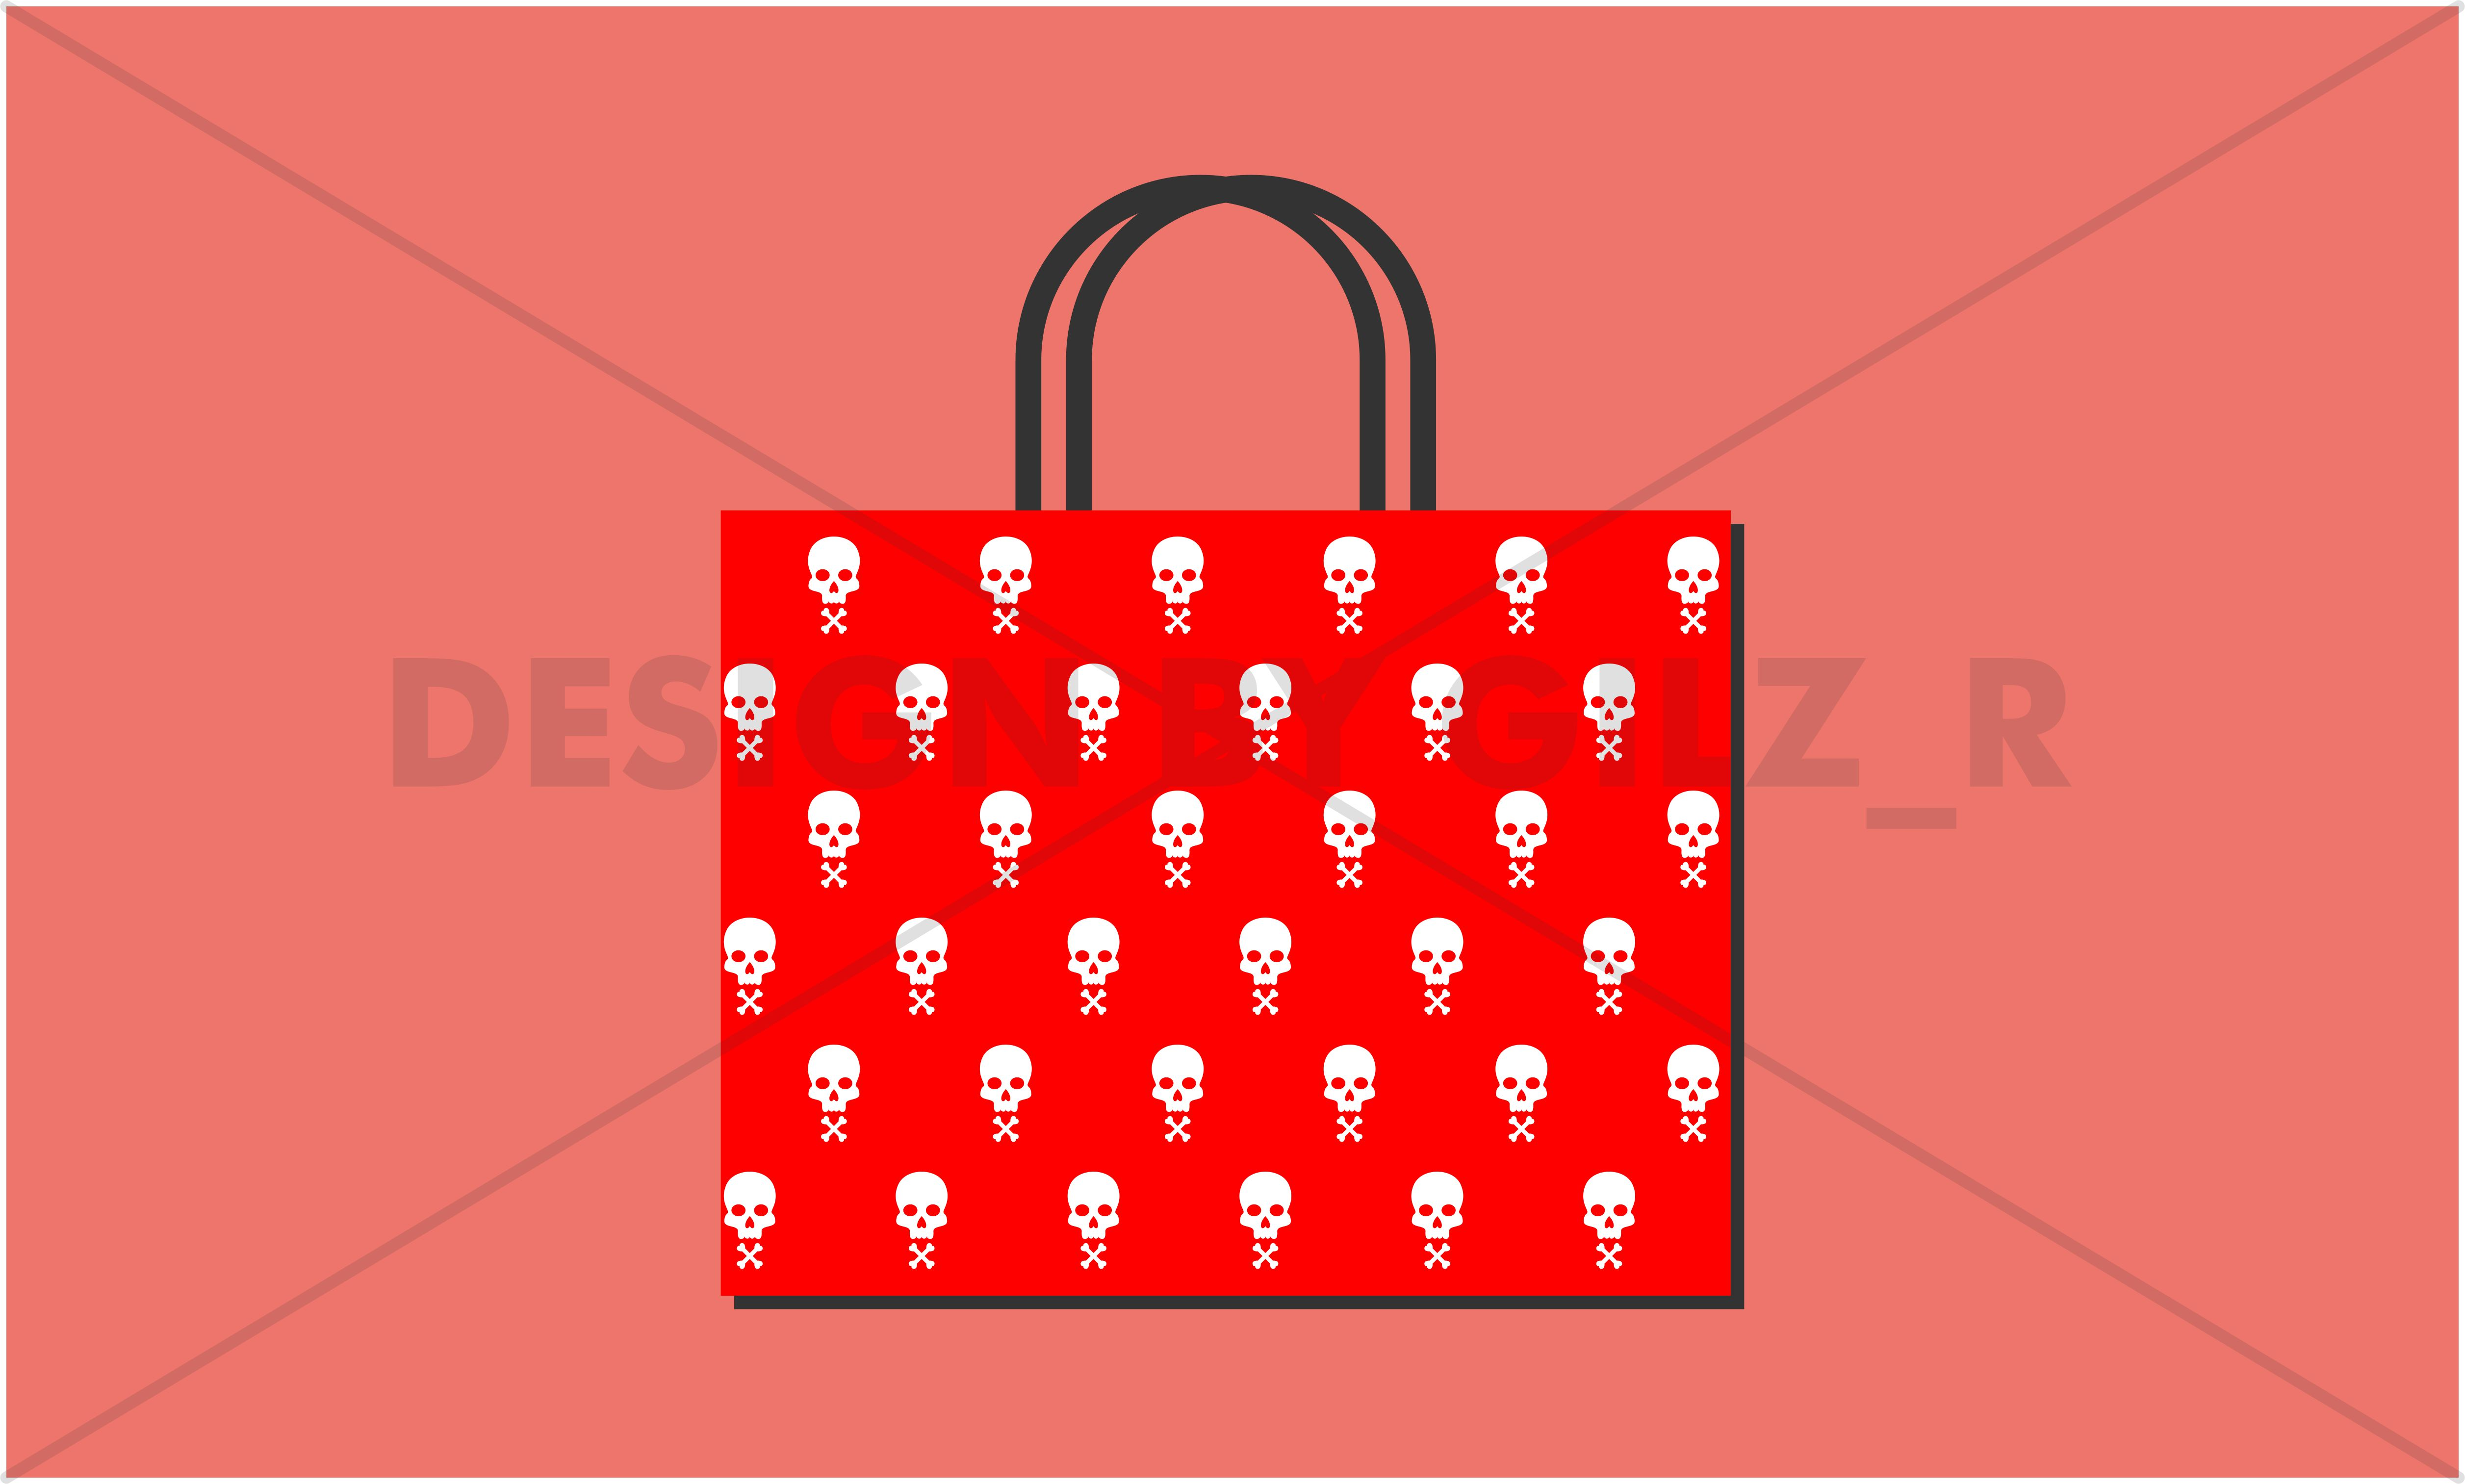 Seamless Simple Skull Pattern Background for Wallpaper, Bed Cover, Pillow Case, T-Shirt, Bag Design example image 4